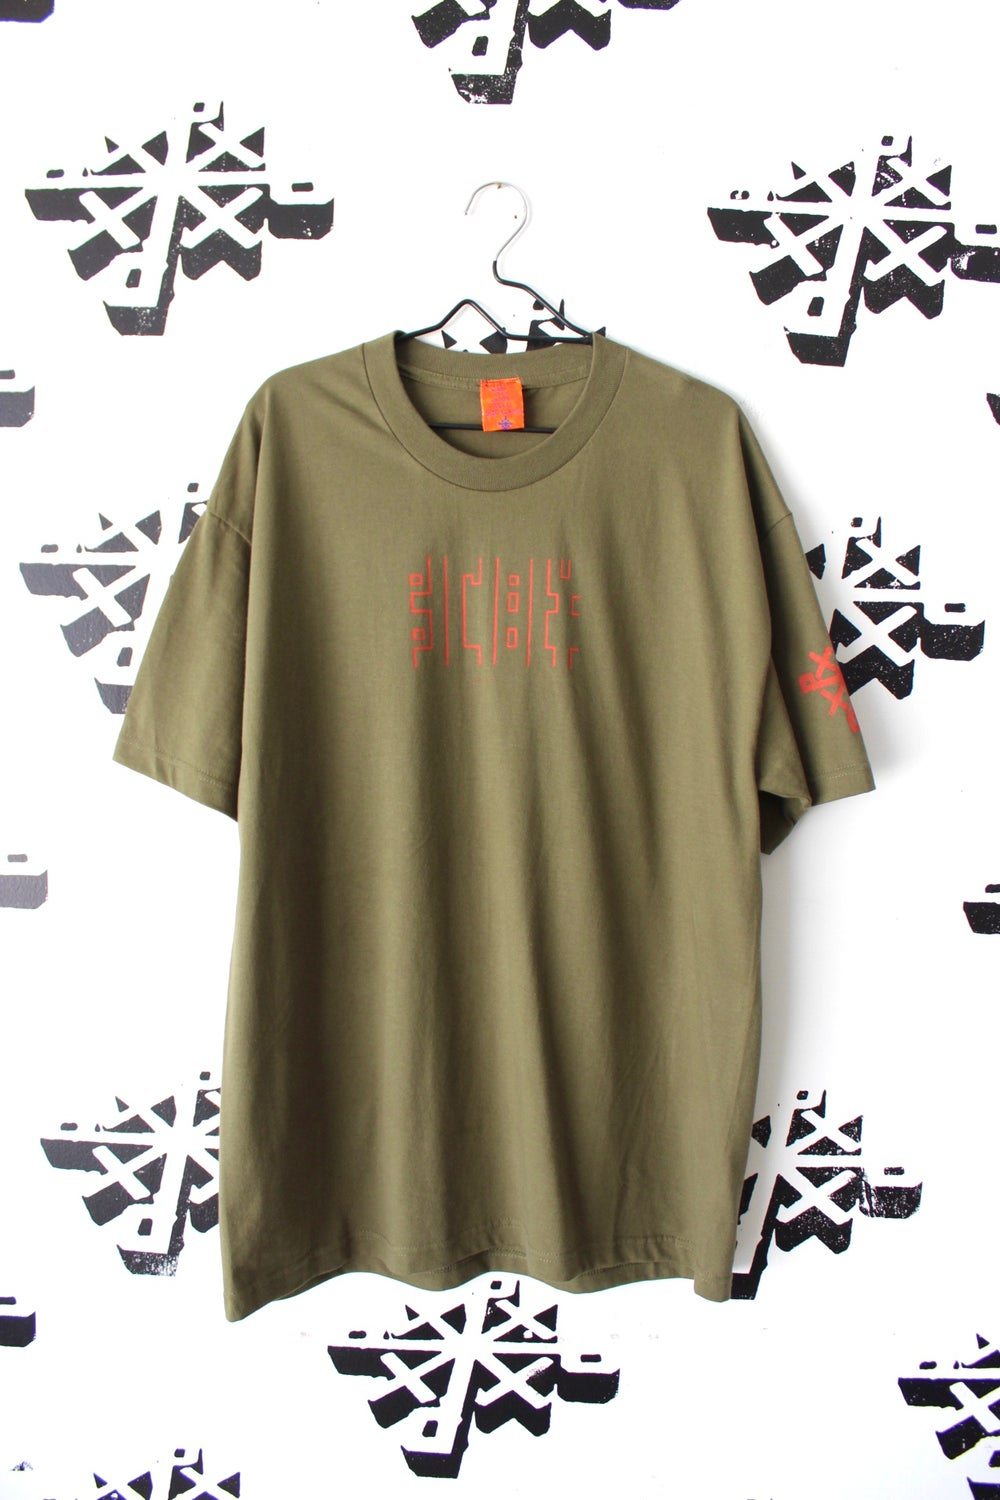 straighten up tee in army green